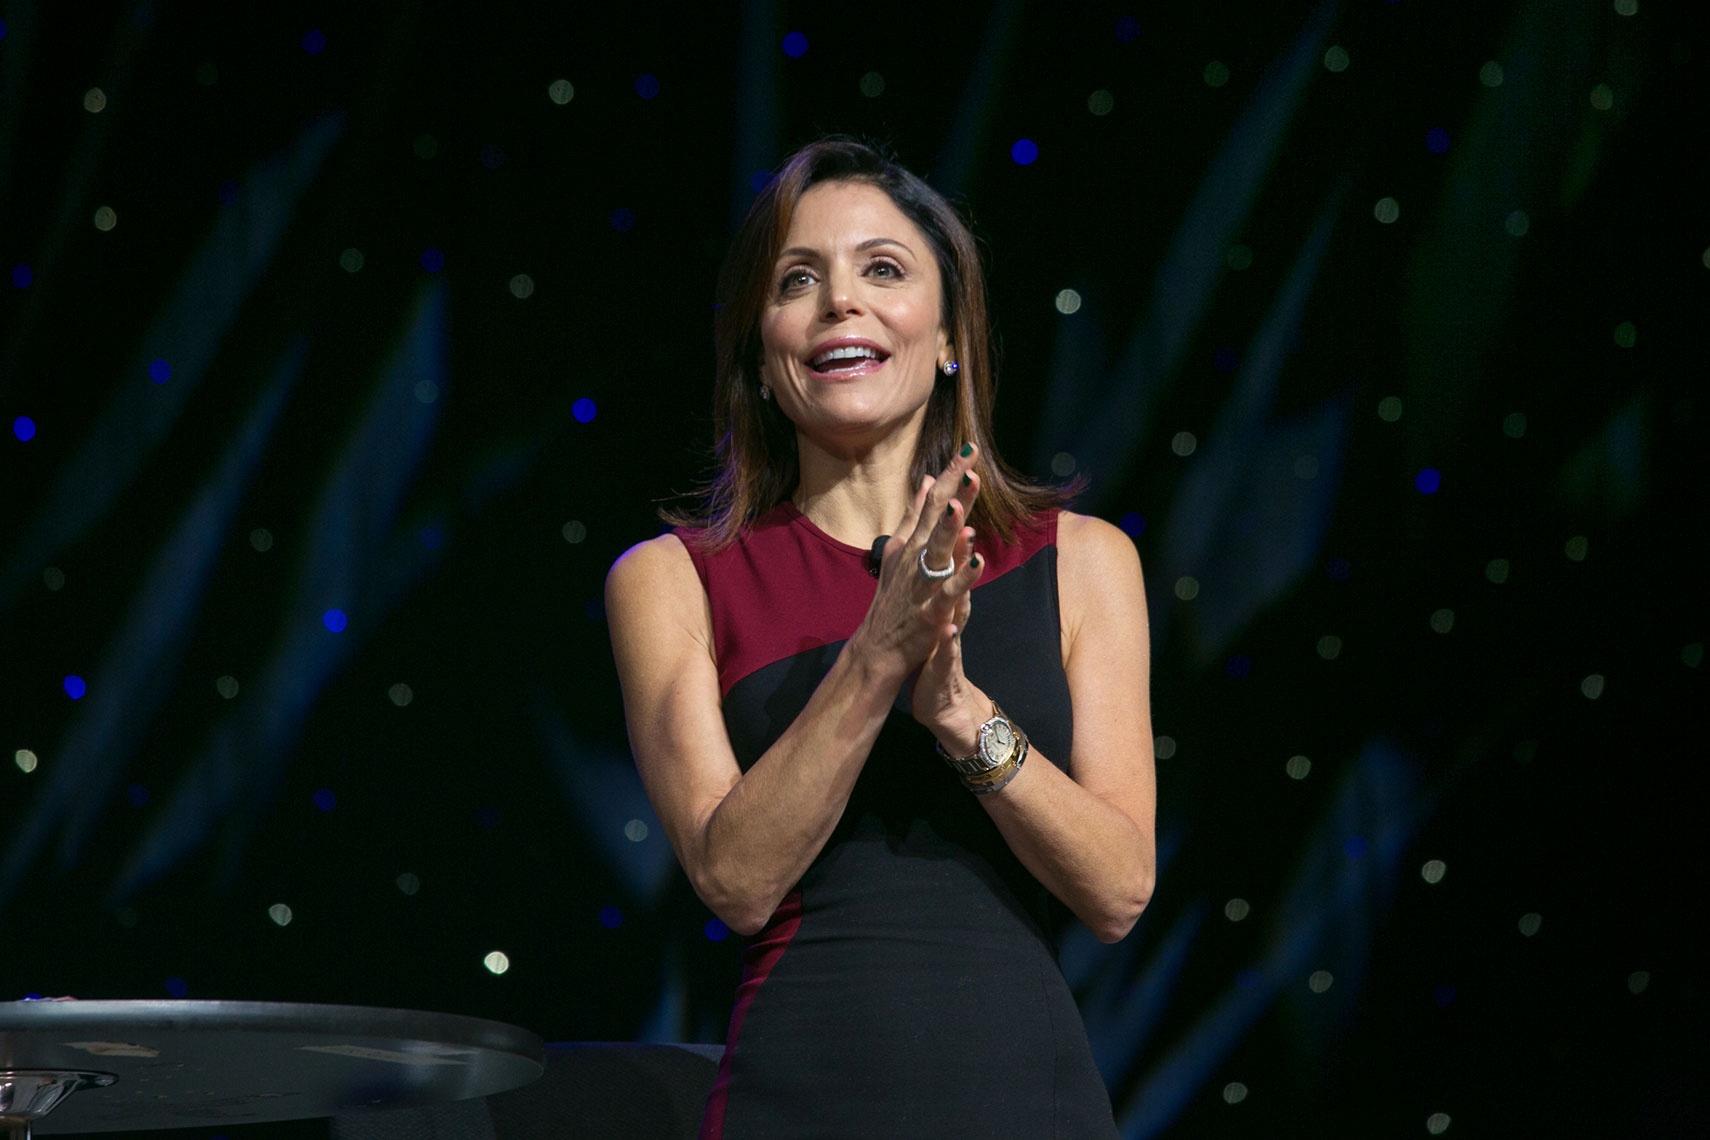 Bethenny Frankel at the National Achievers Congress Boston 2017